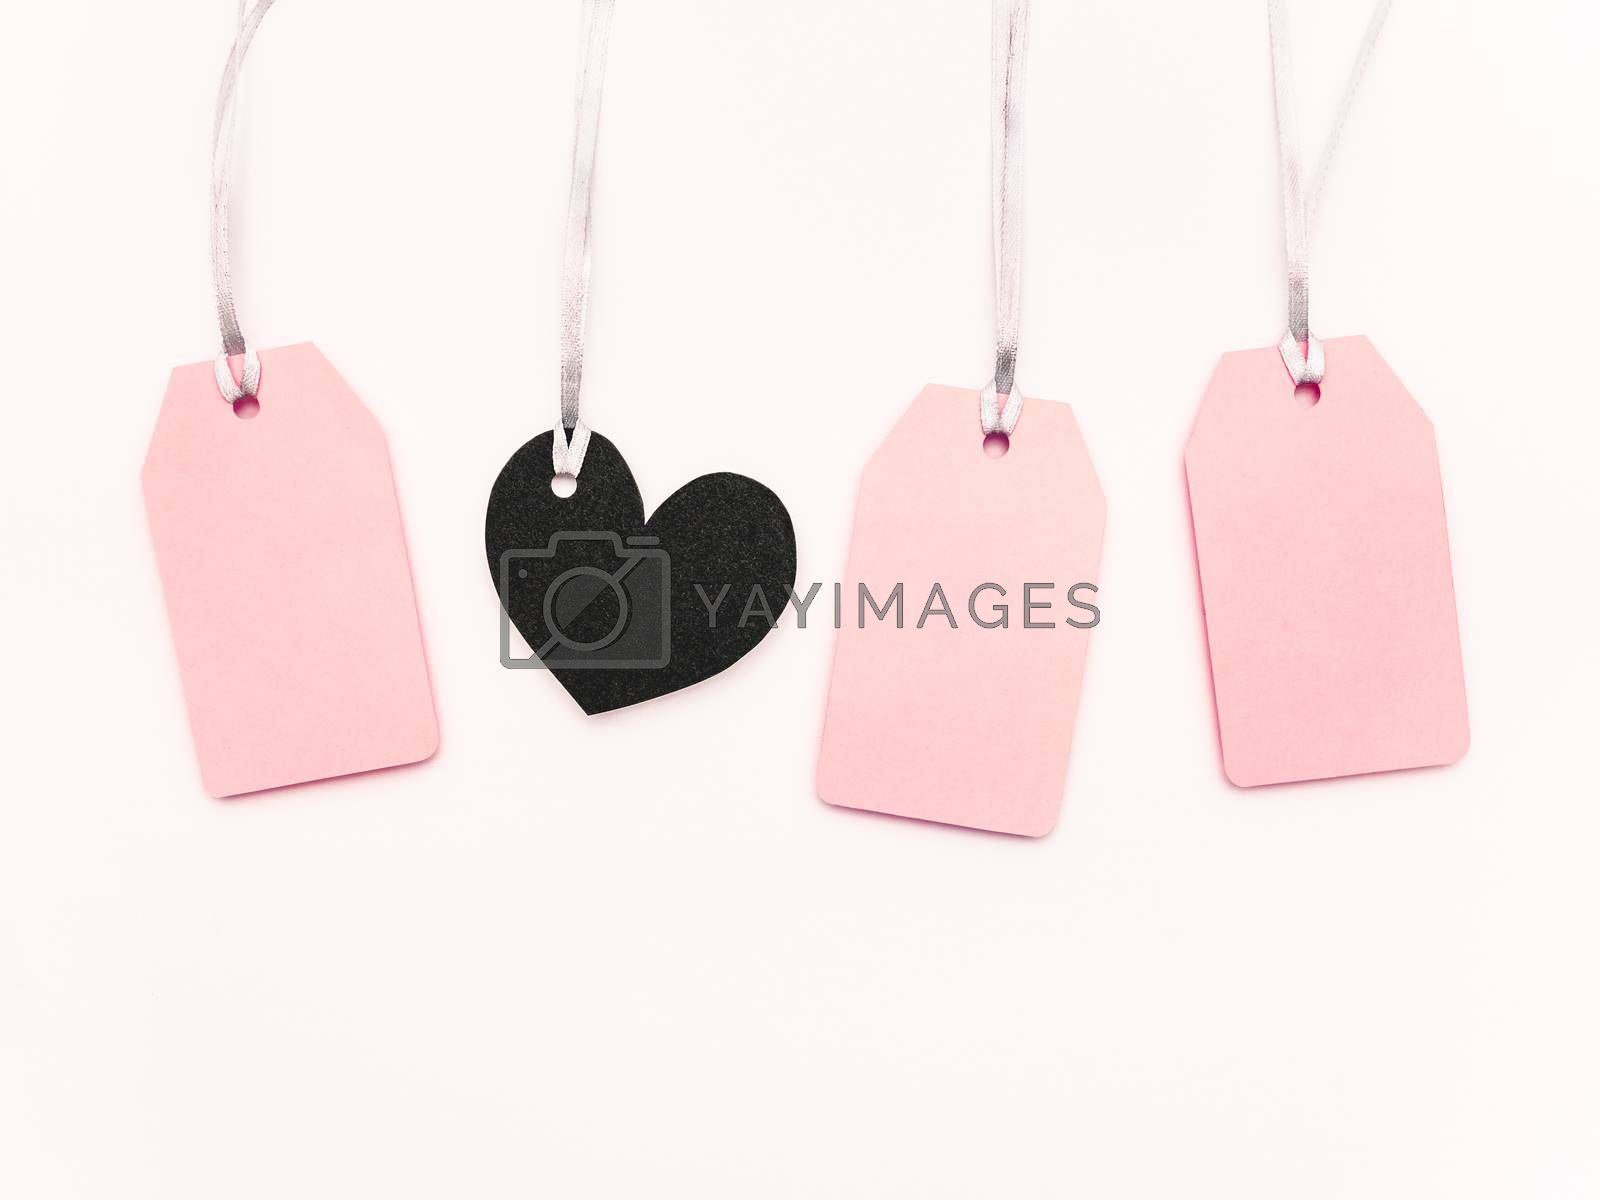 Pink and black heart clear tags on white background. Glamorous labels on silver threads with copy space. Symbol of Black Friday sale and shopping. Top view, flat lay.